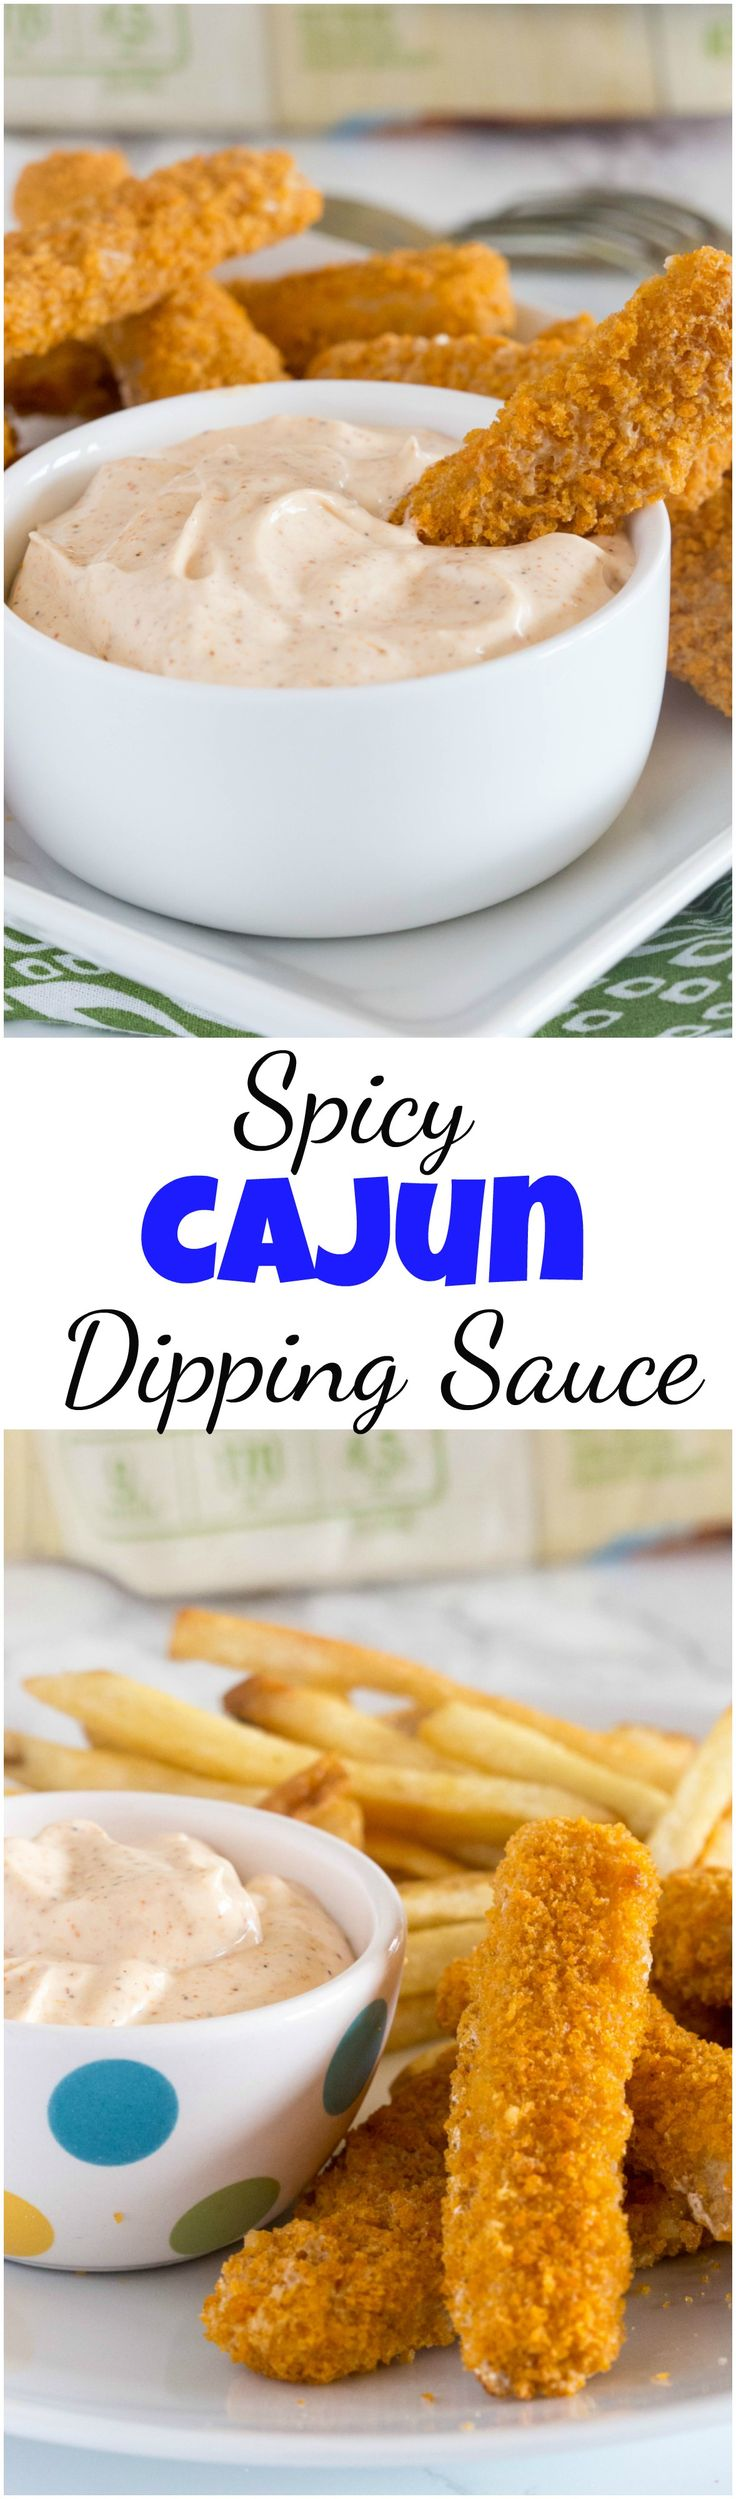 45769 best fun foods images on pinterest healthy eating for Dipping sauce for fish sticks